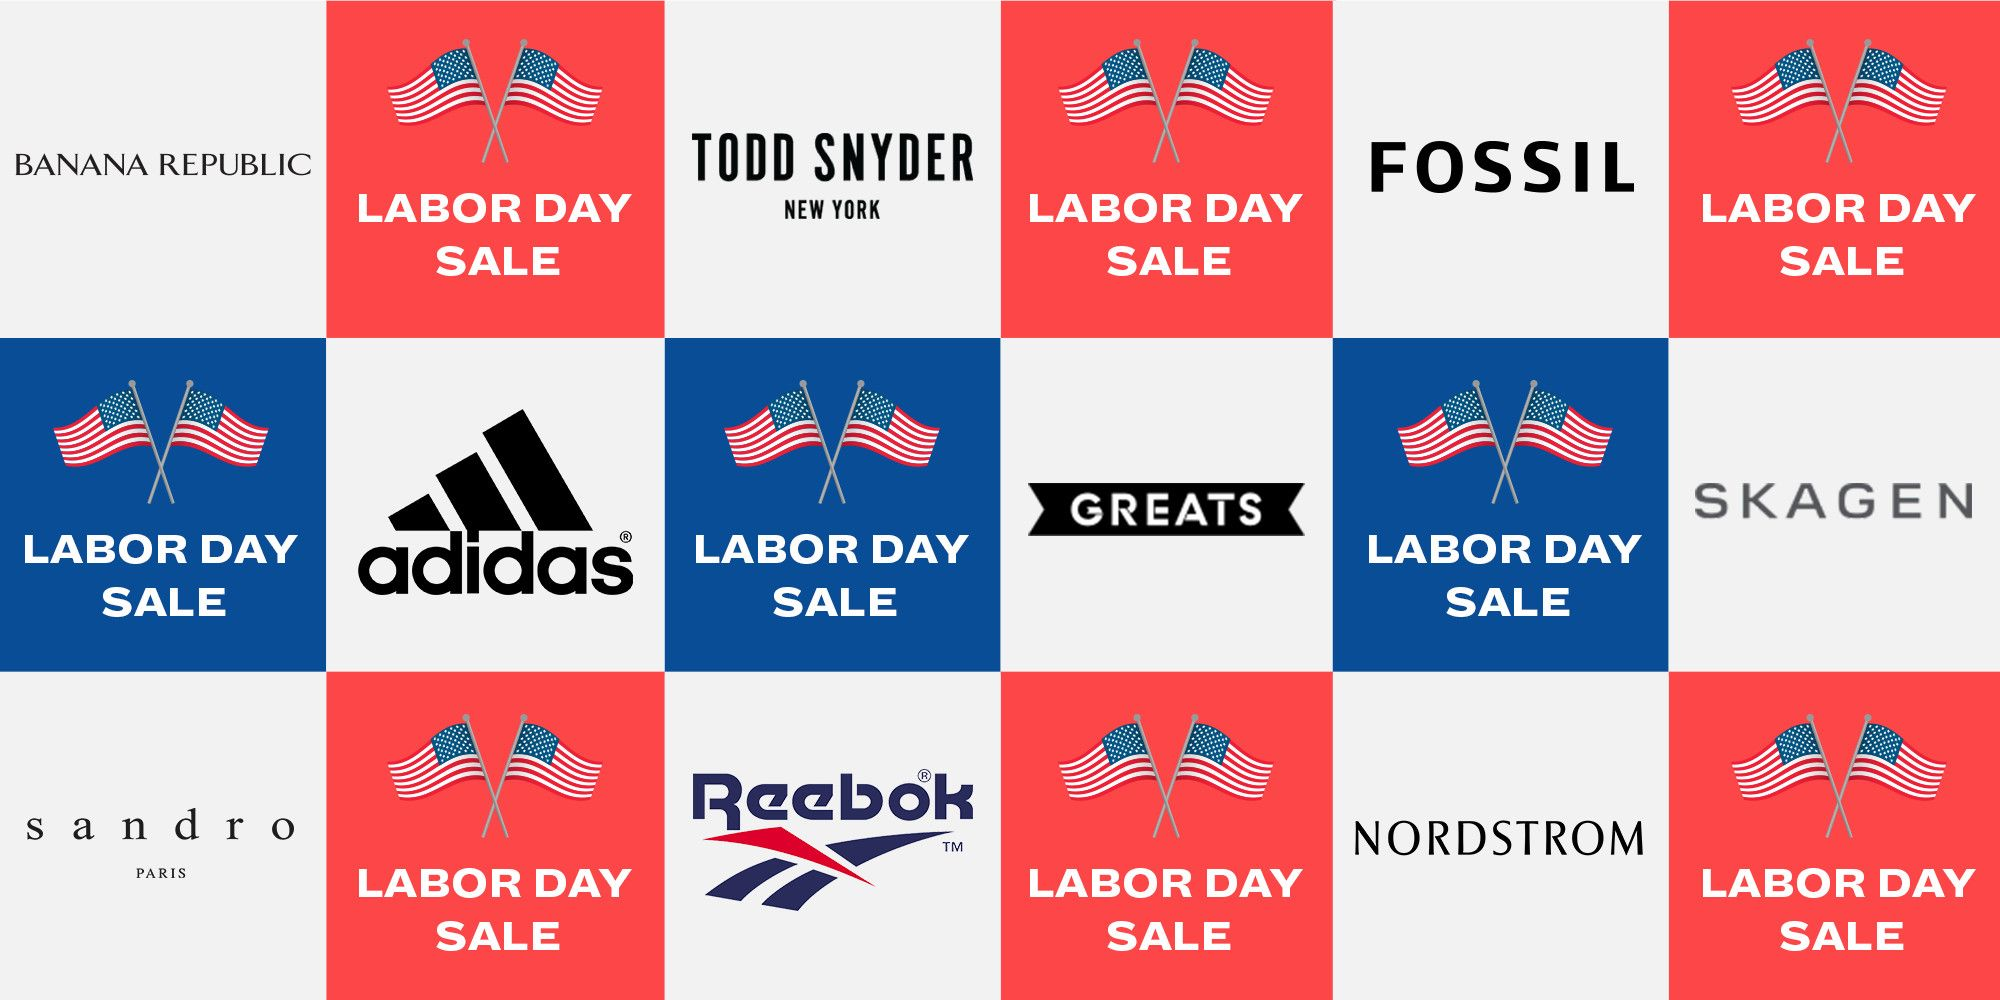 Sales for Labor Day 2019